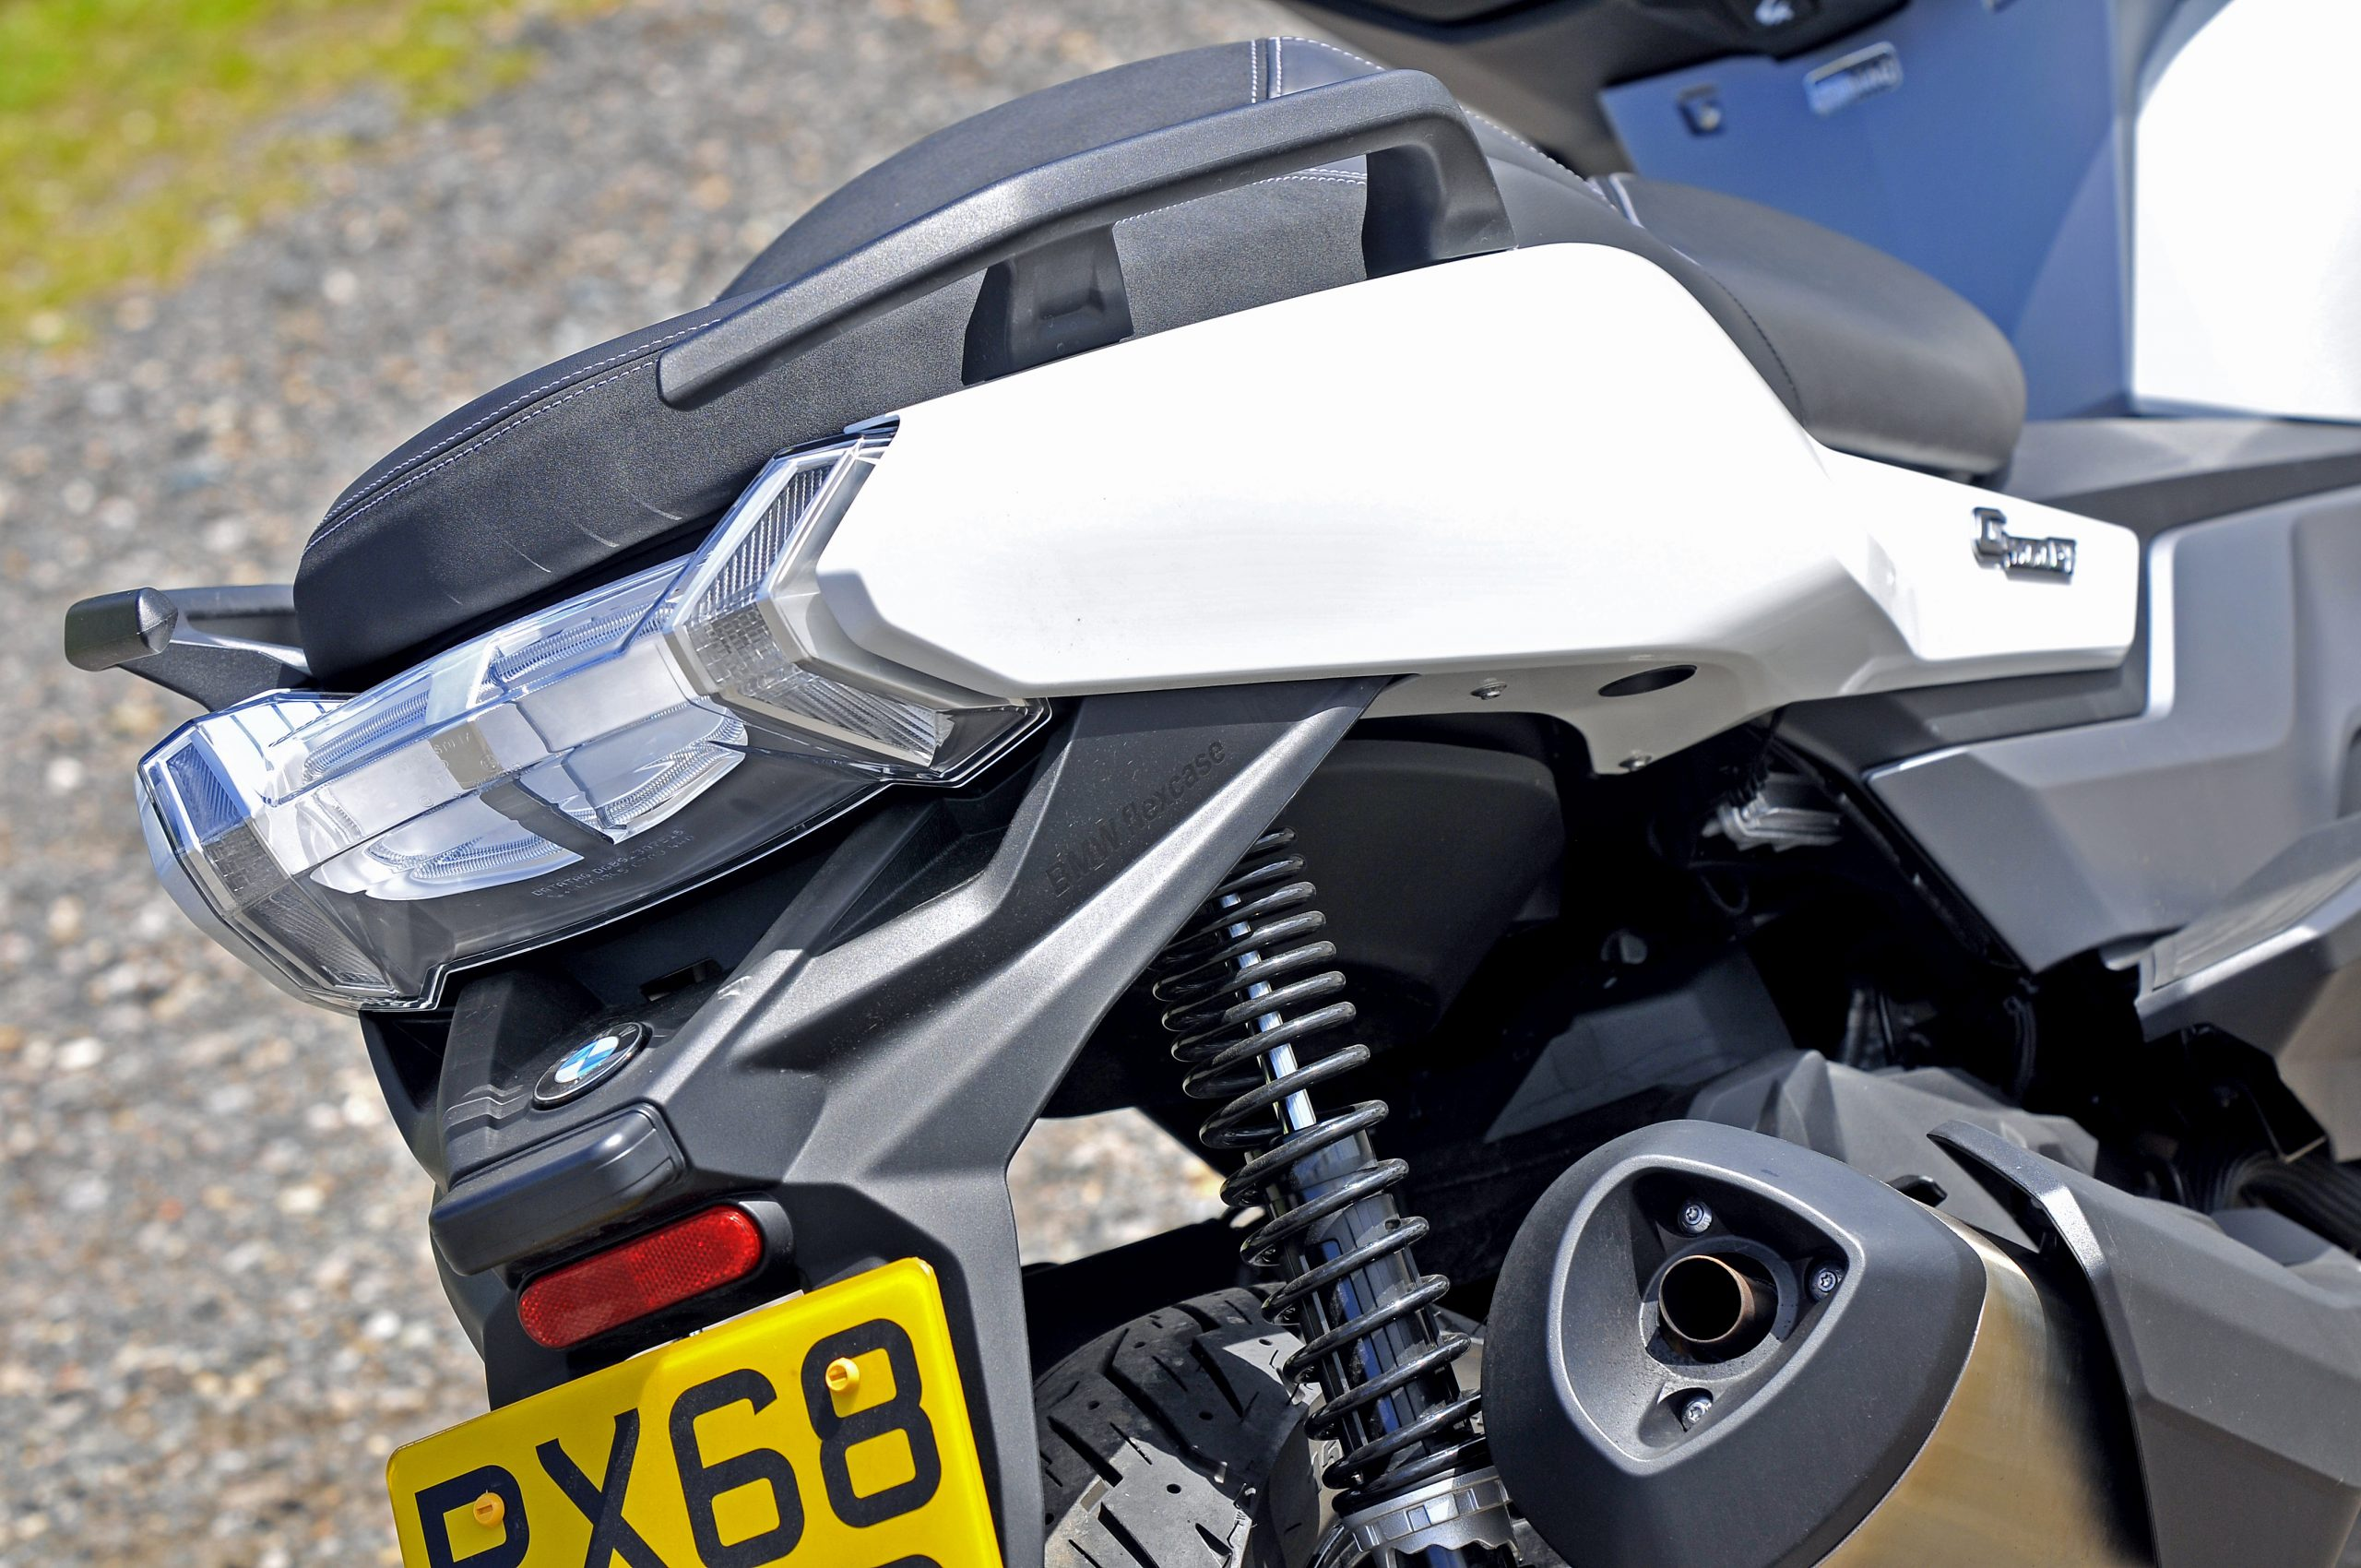 Tail end of BMW C400 GT